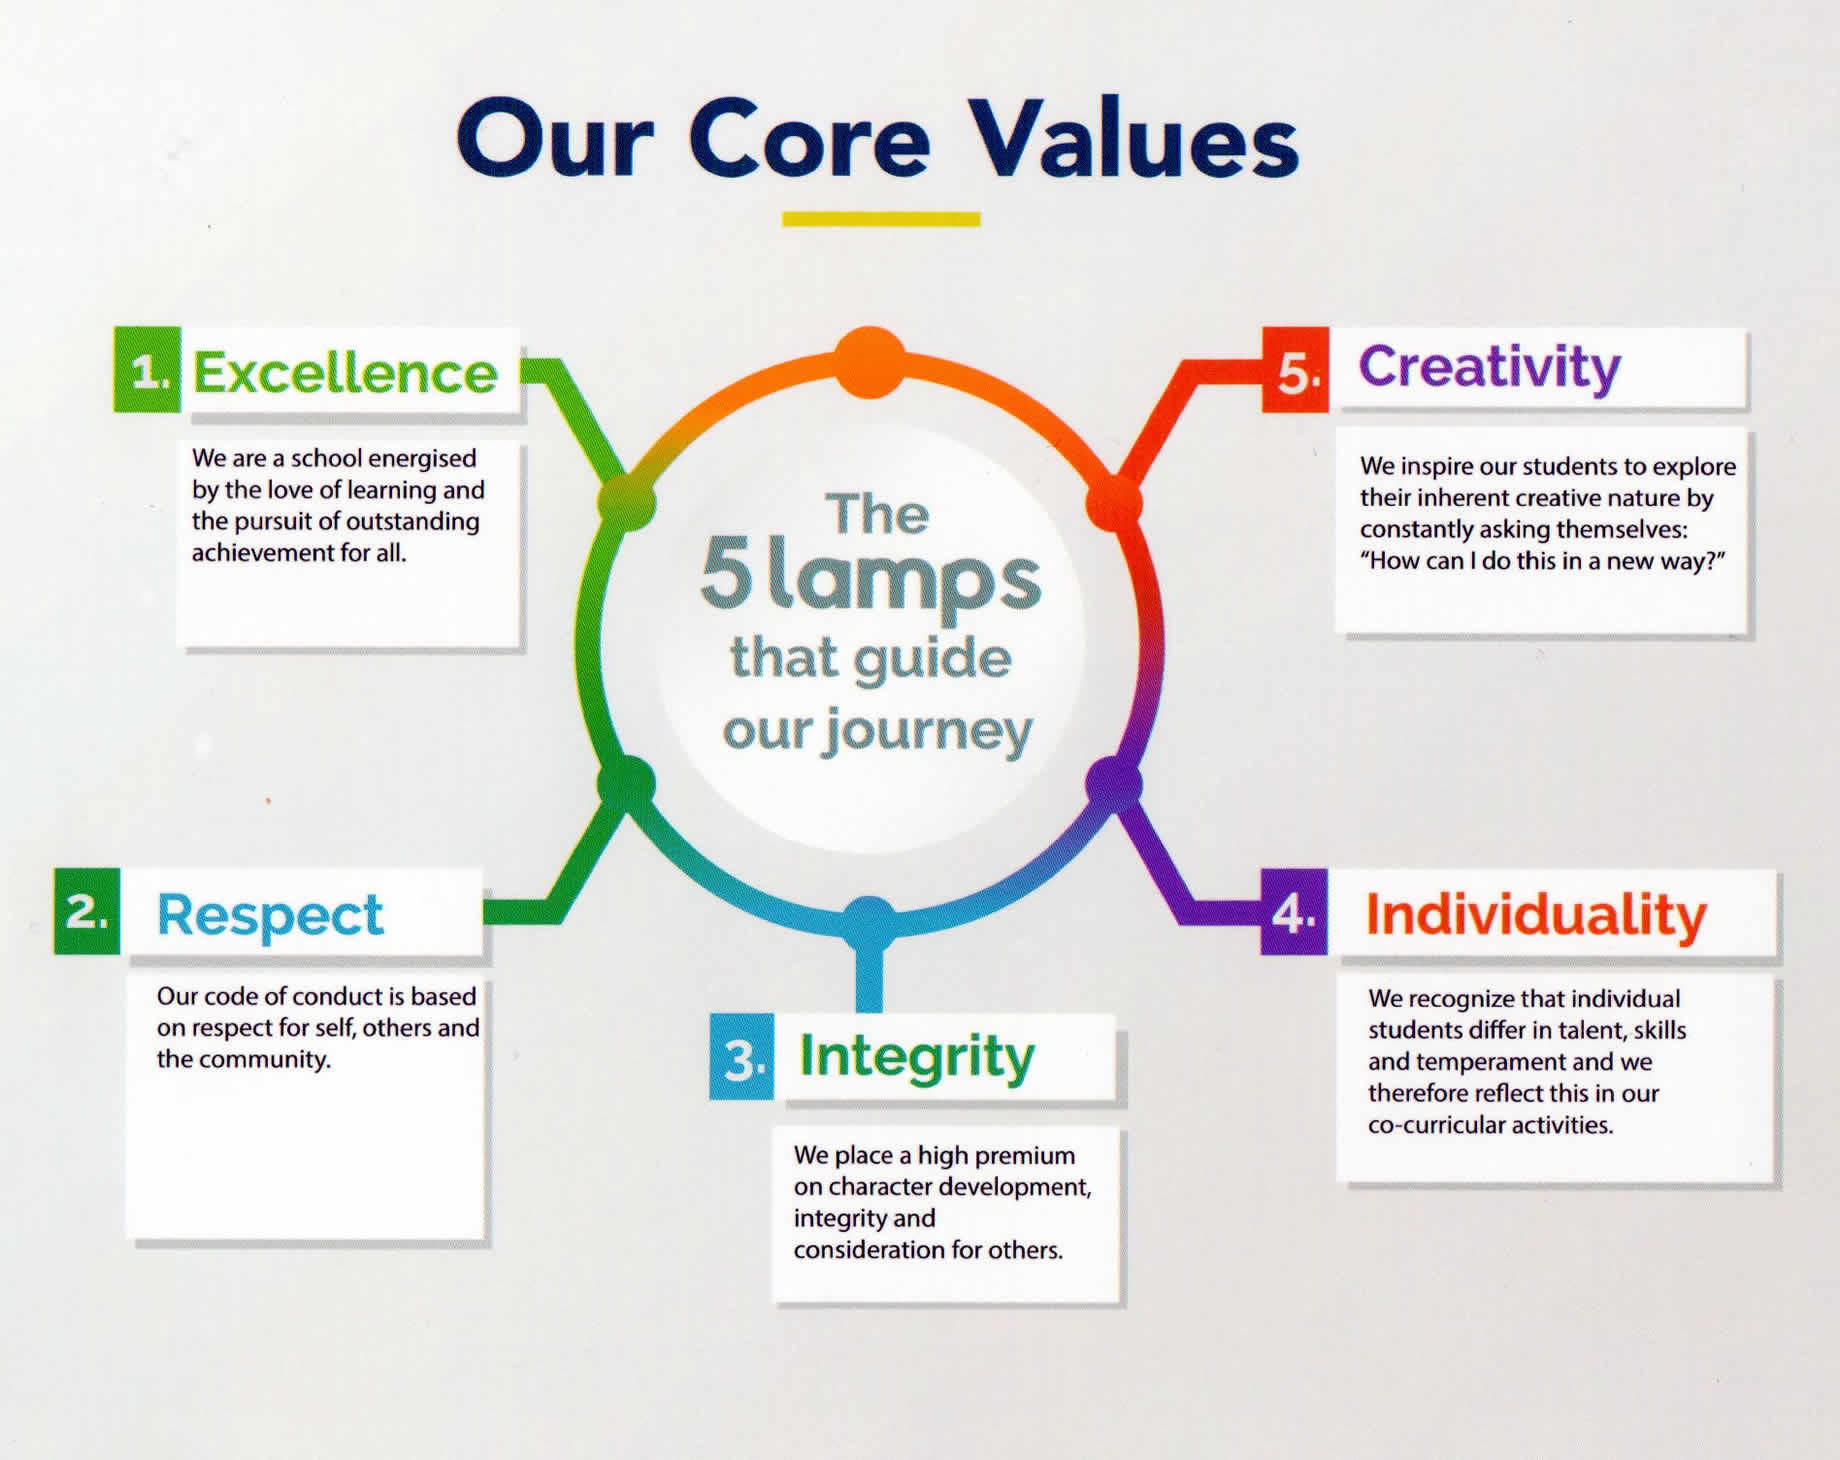 Our Core Value